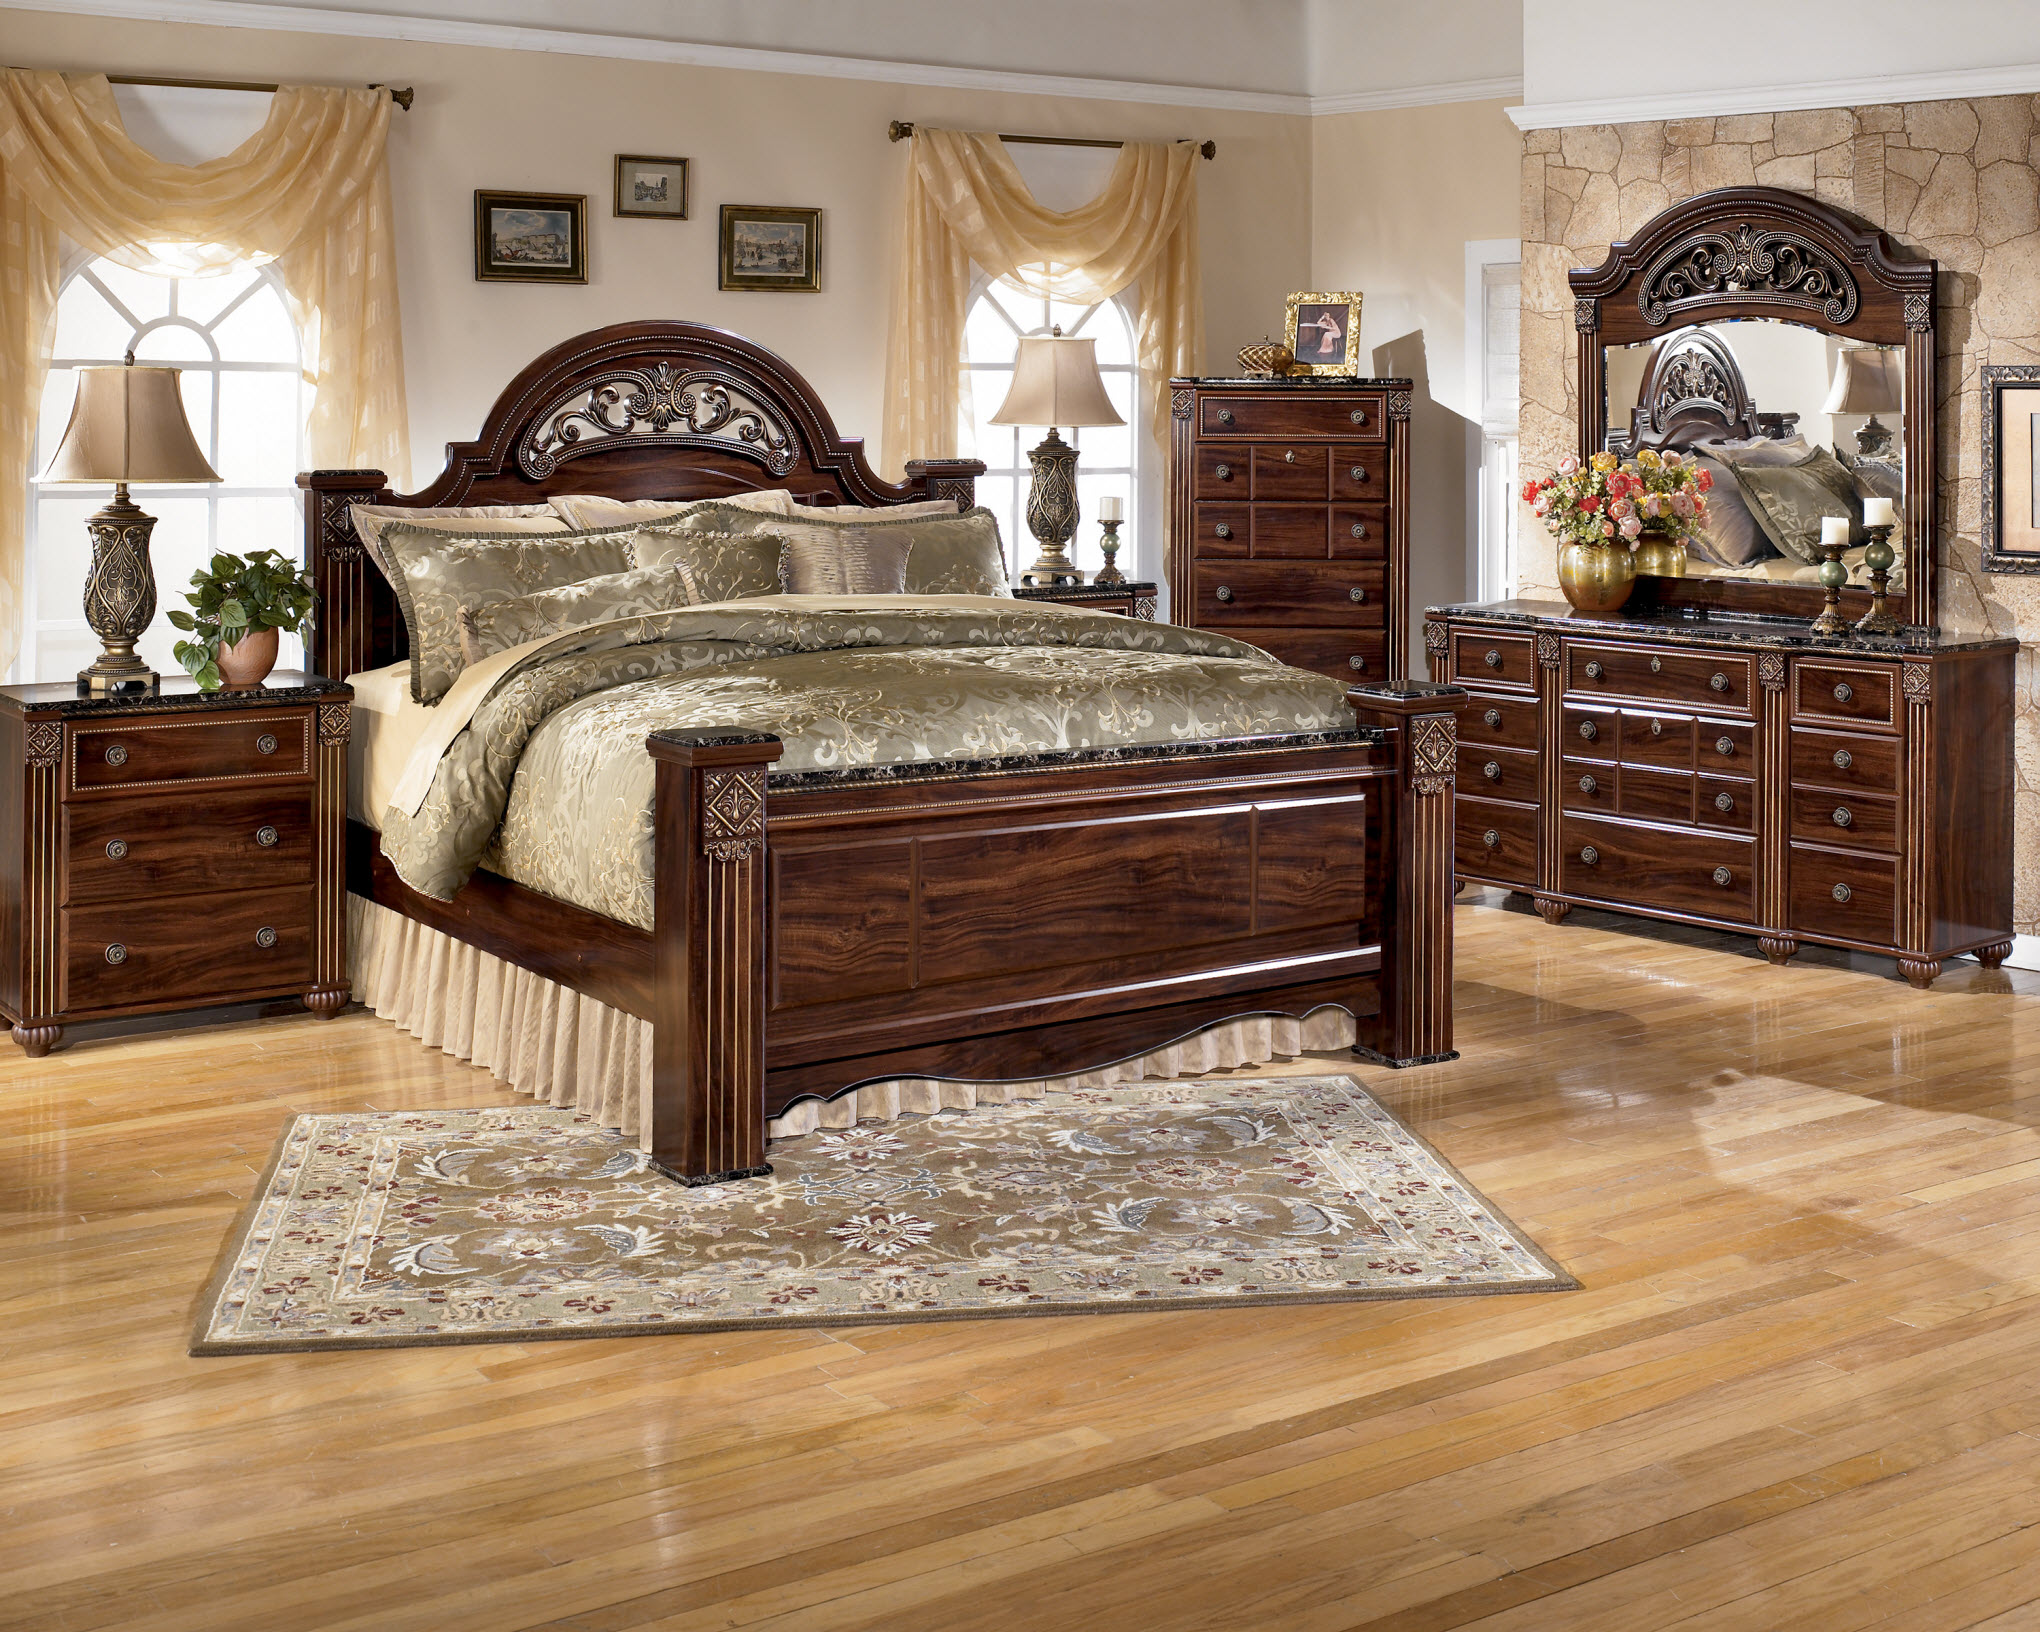 Ashley b347 bedroom set Ashley home furniture bedroom sets